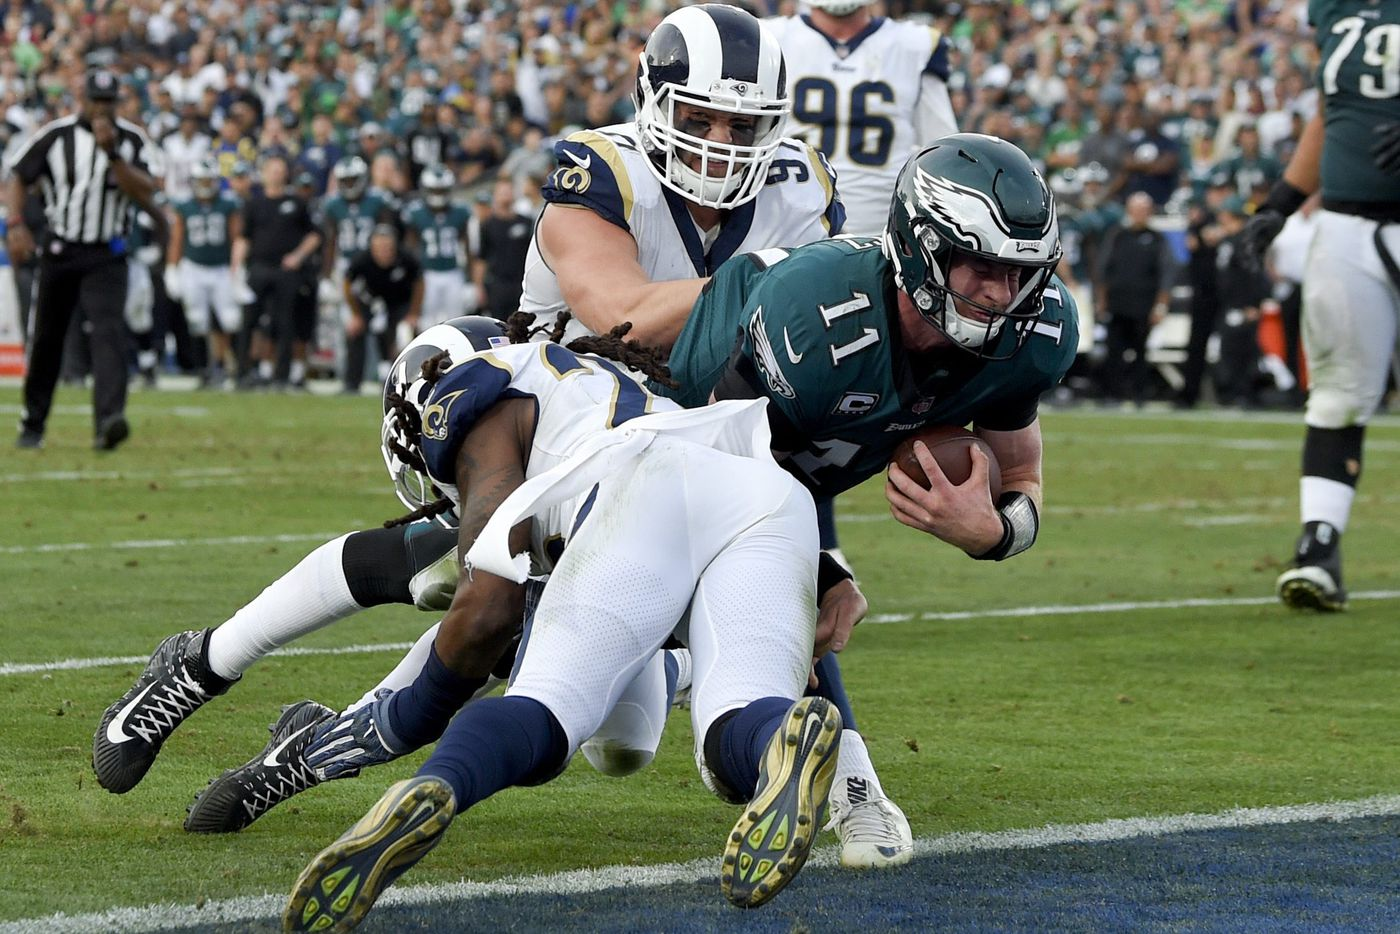 Eagles Carson Wentz Gets Another Chance To Stay Healthy He S Running Out Of Them Bob Ford